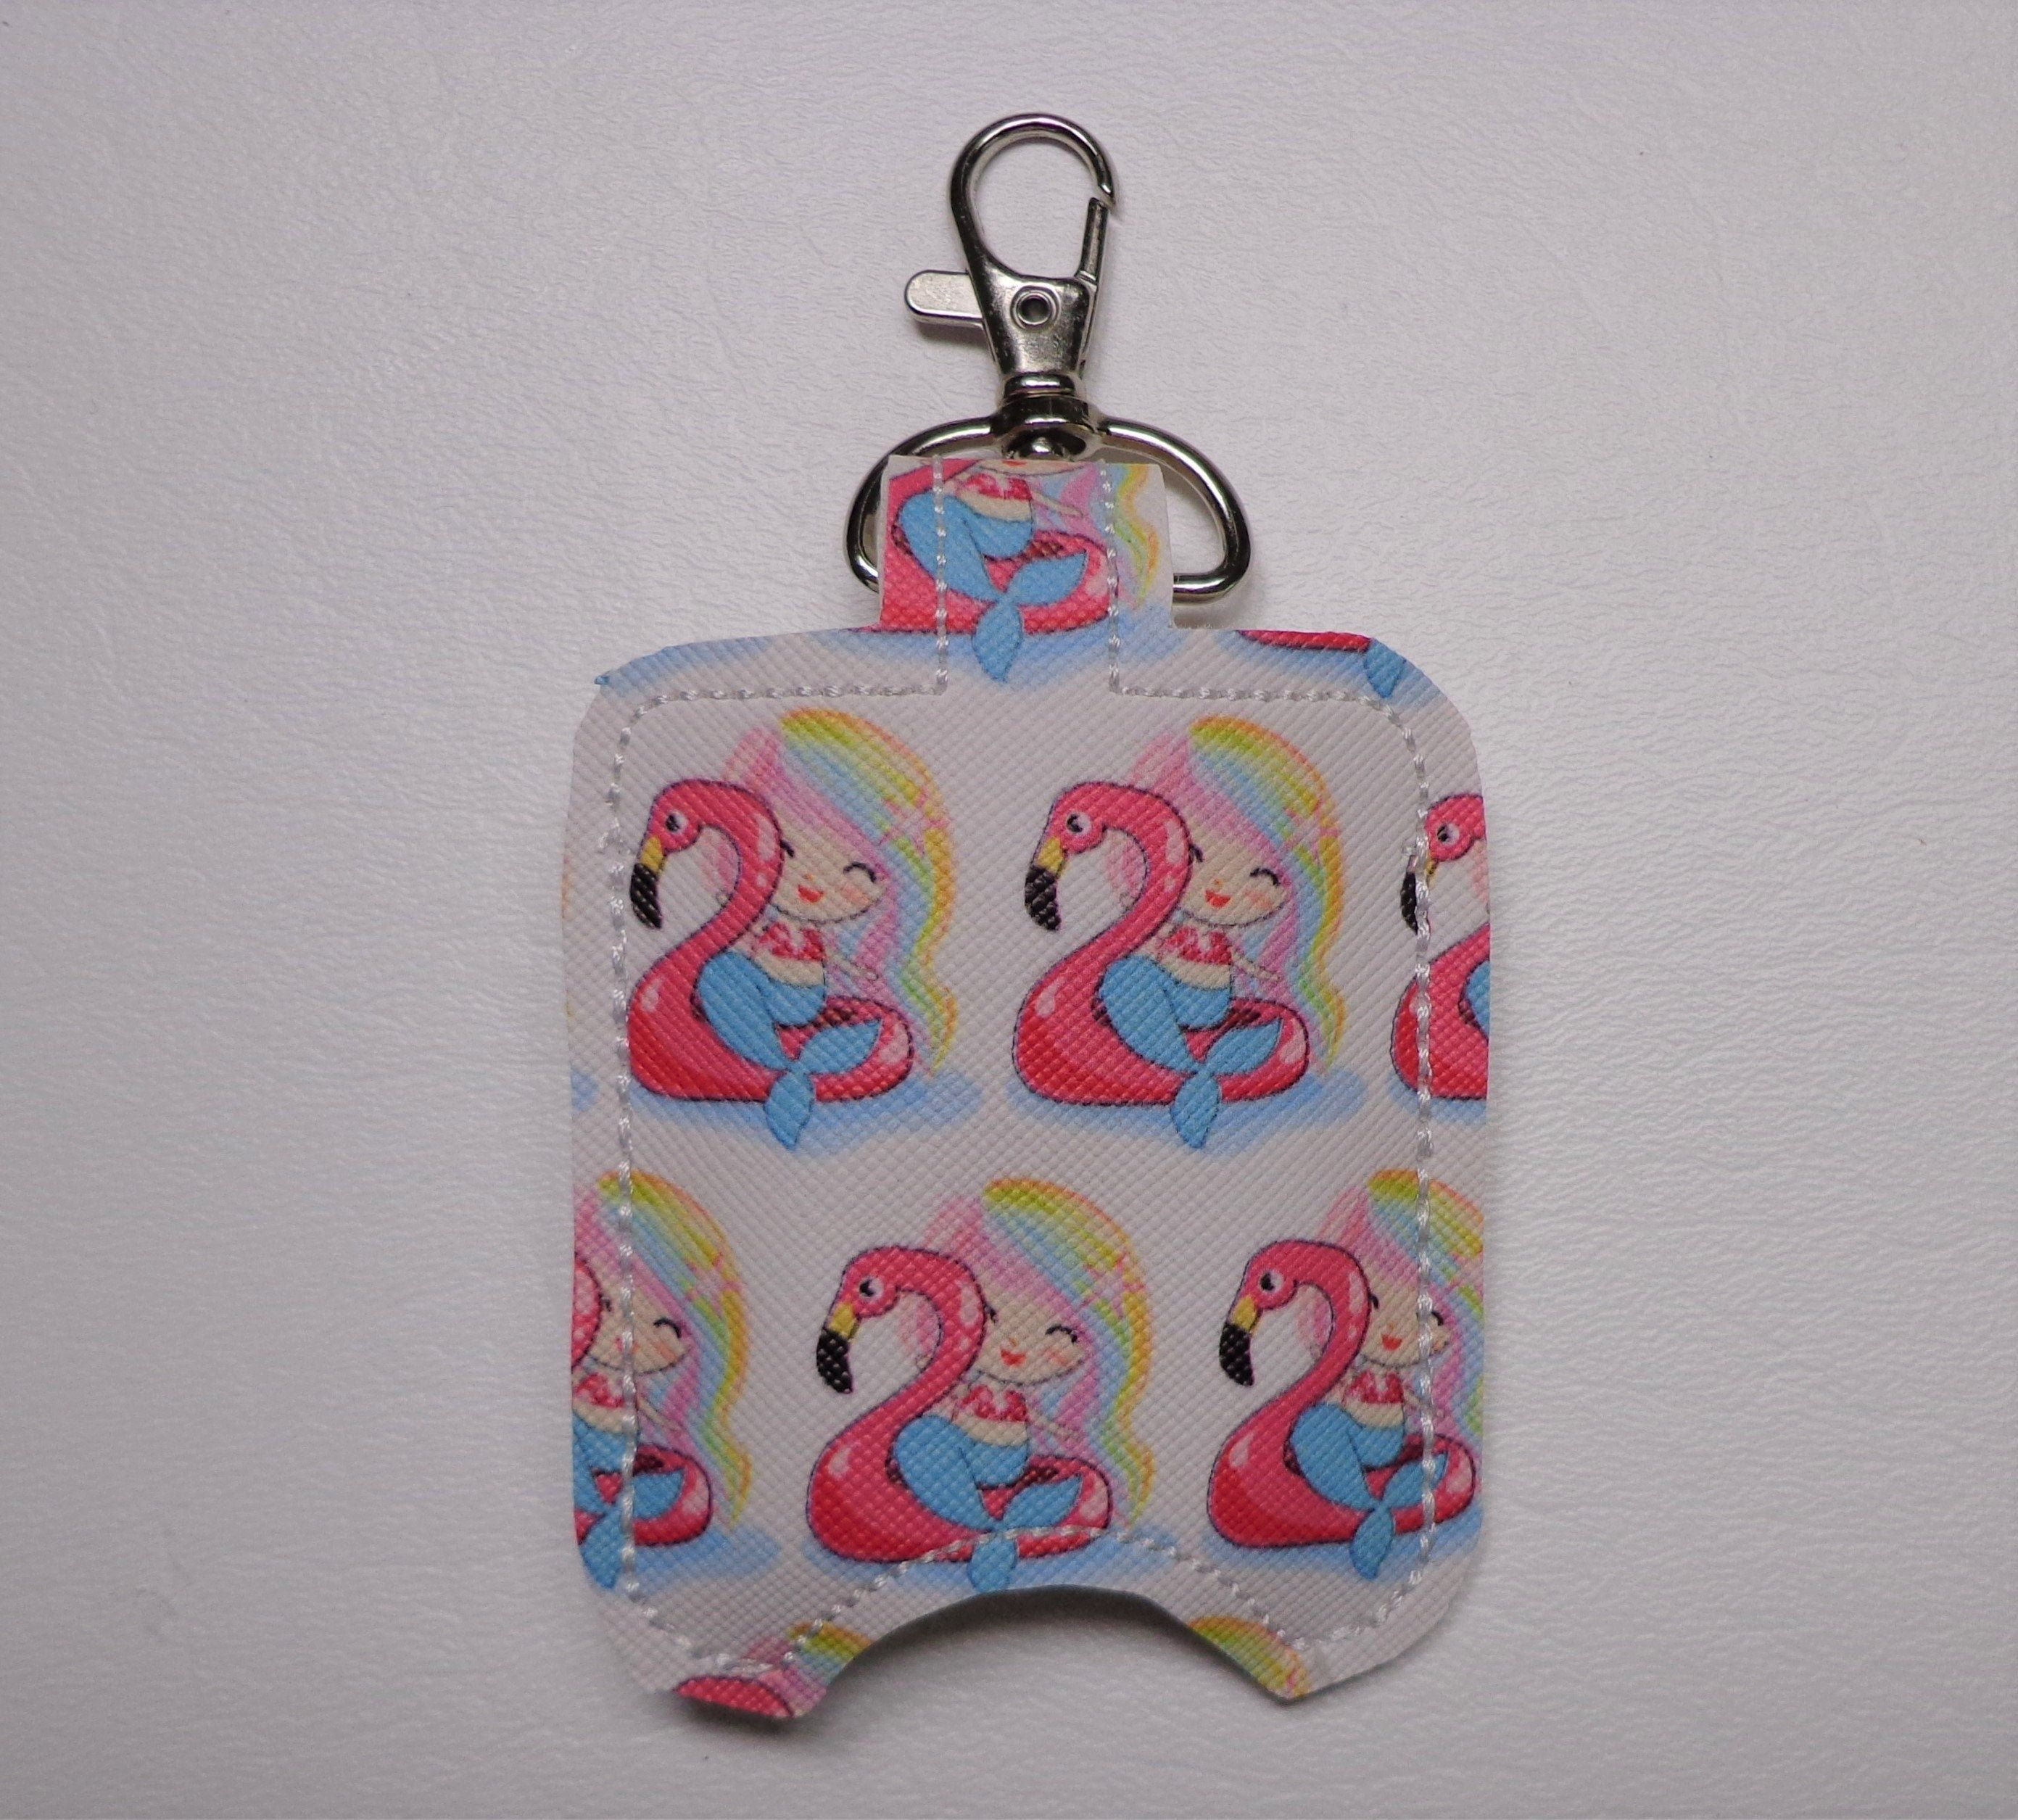 Mermaid Riding Pink Flamingo Hand Sanitizer Holder Client